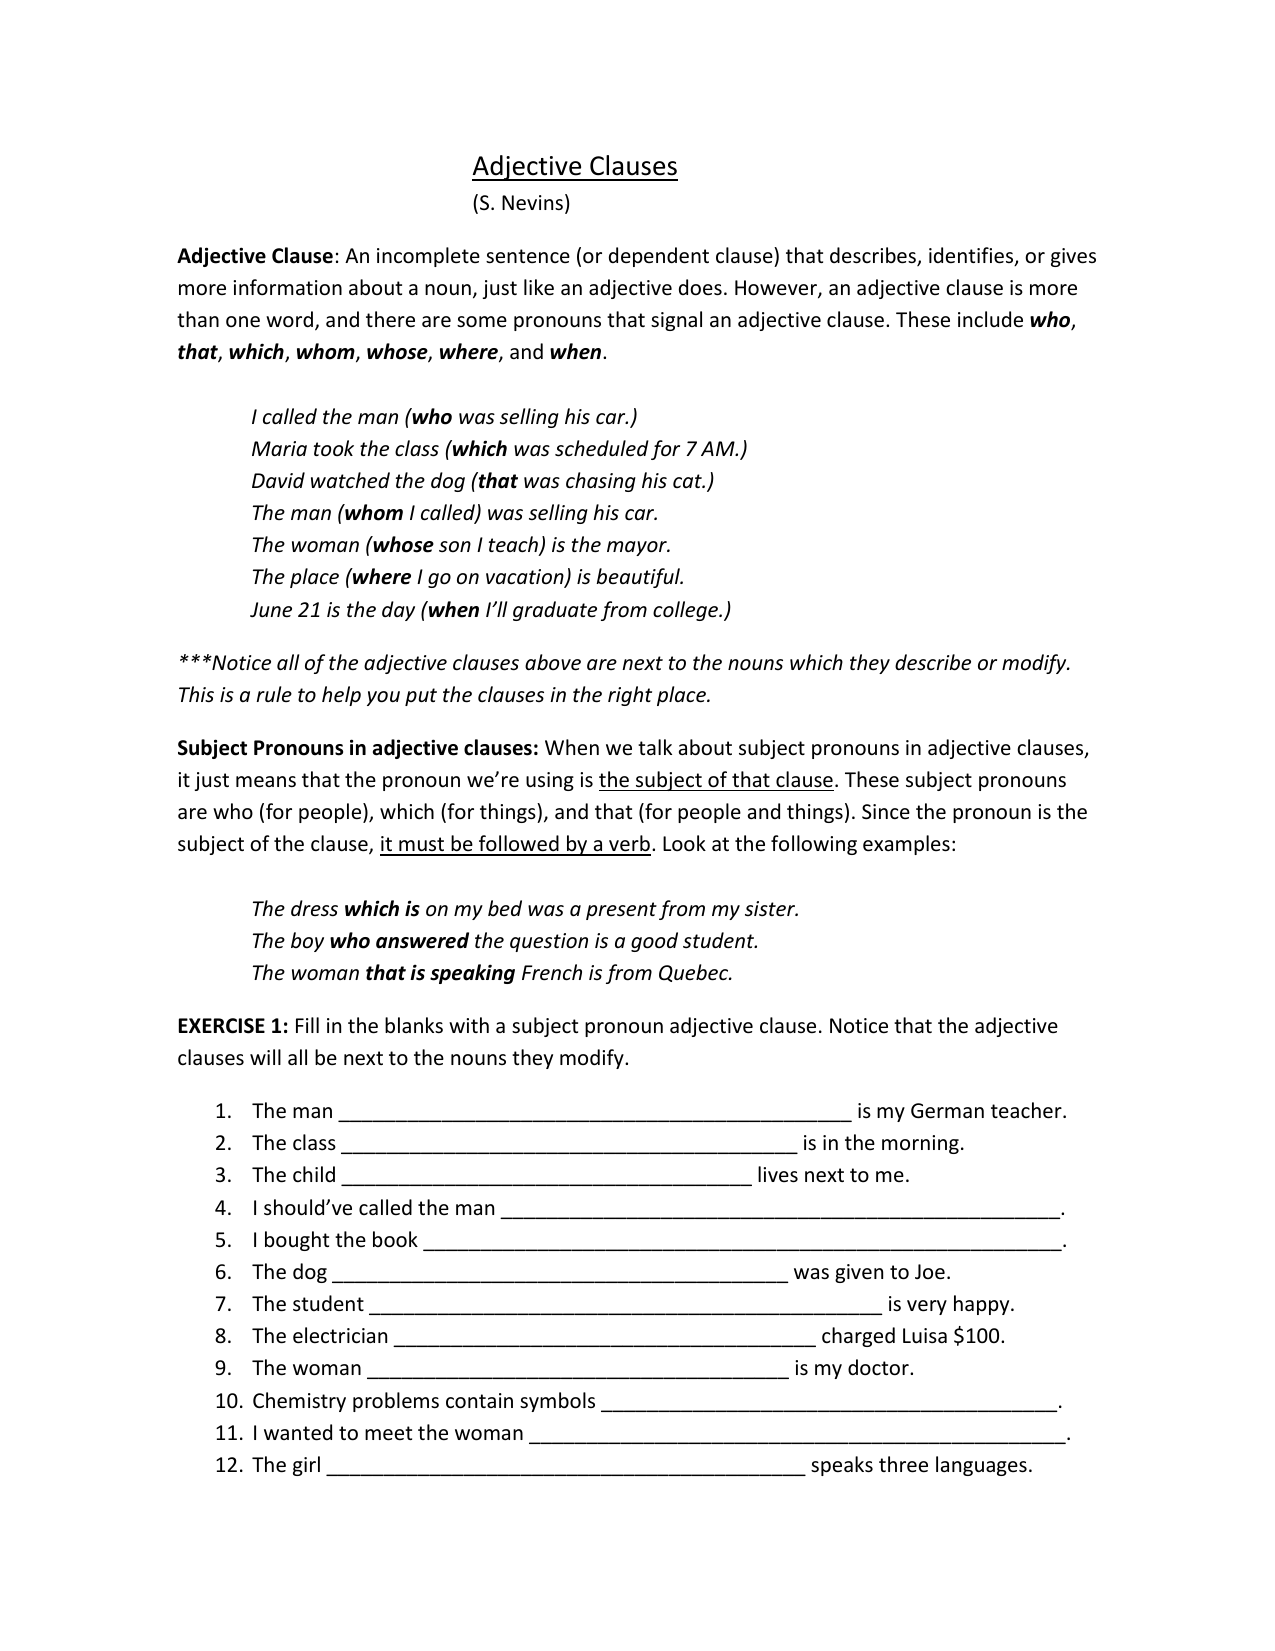 Adjective Clauses Worksheet Copy